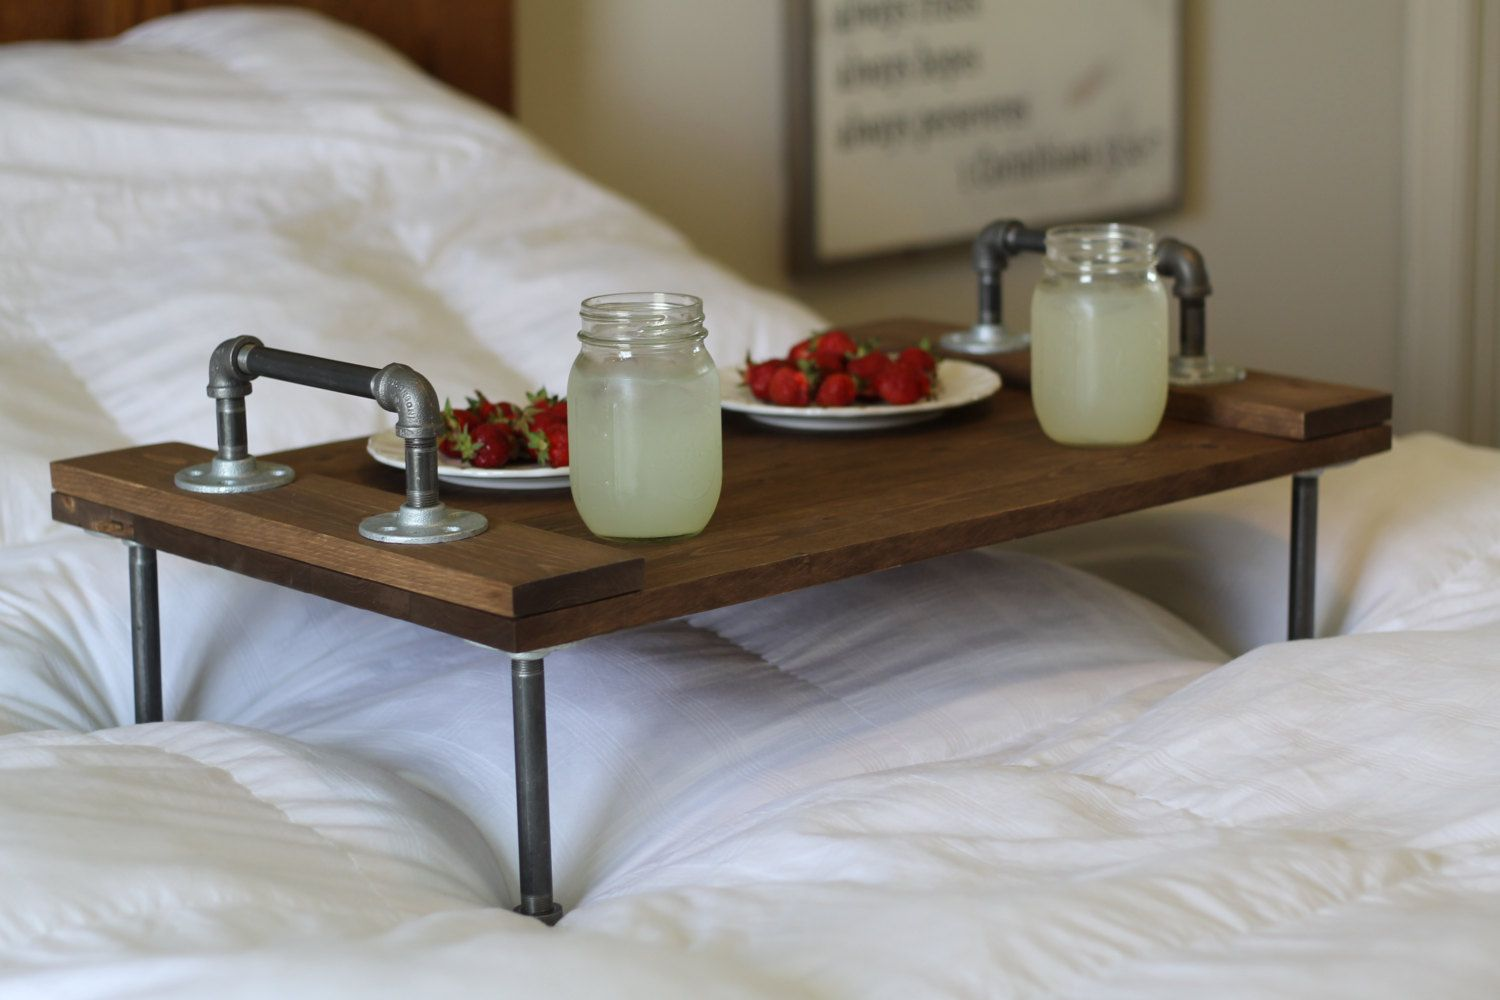 Wooden Tray Decor Adorable Furniturerusticindustrialdiybreakfastoverthebedtraytable Decorating Design